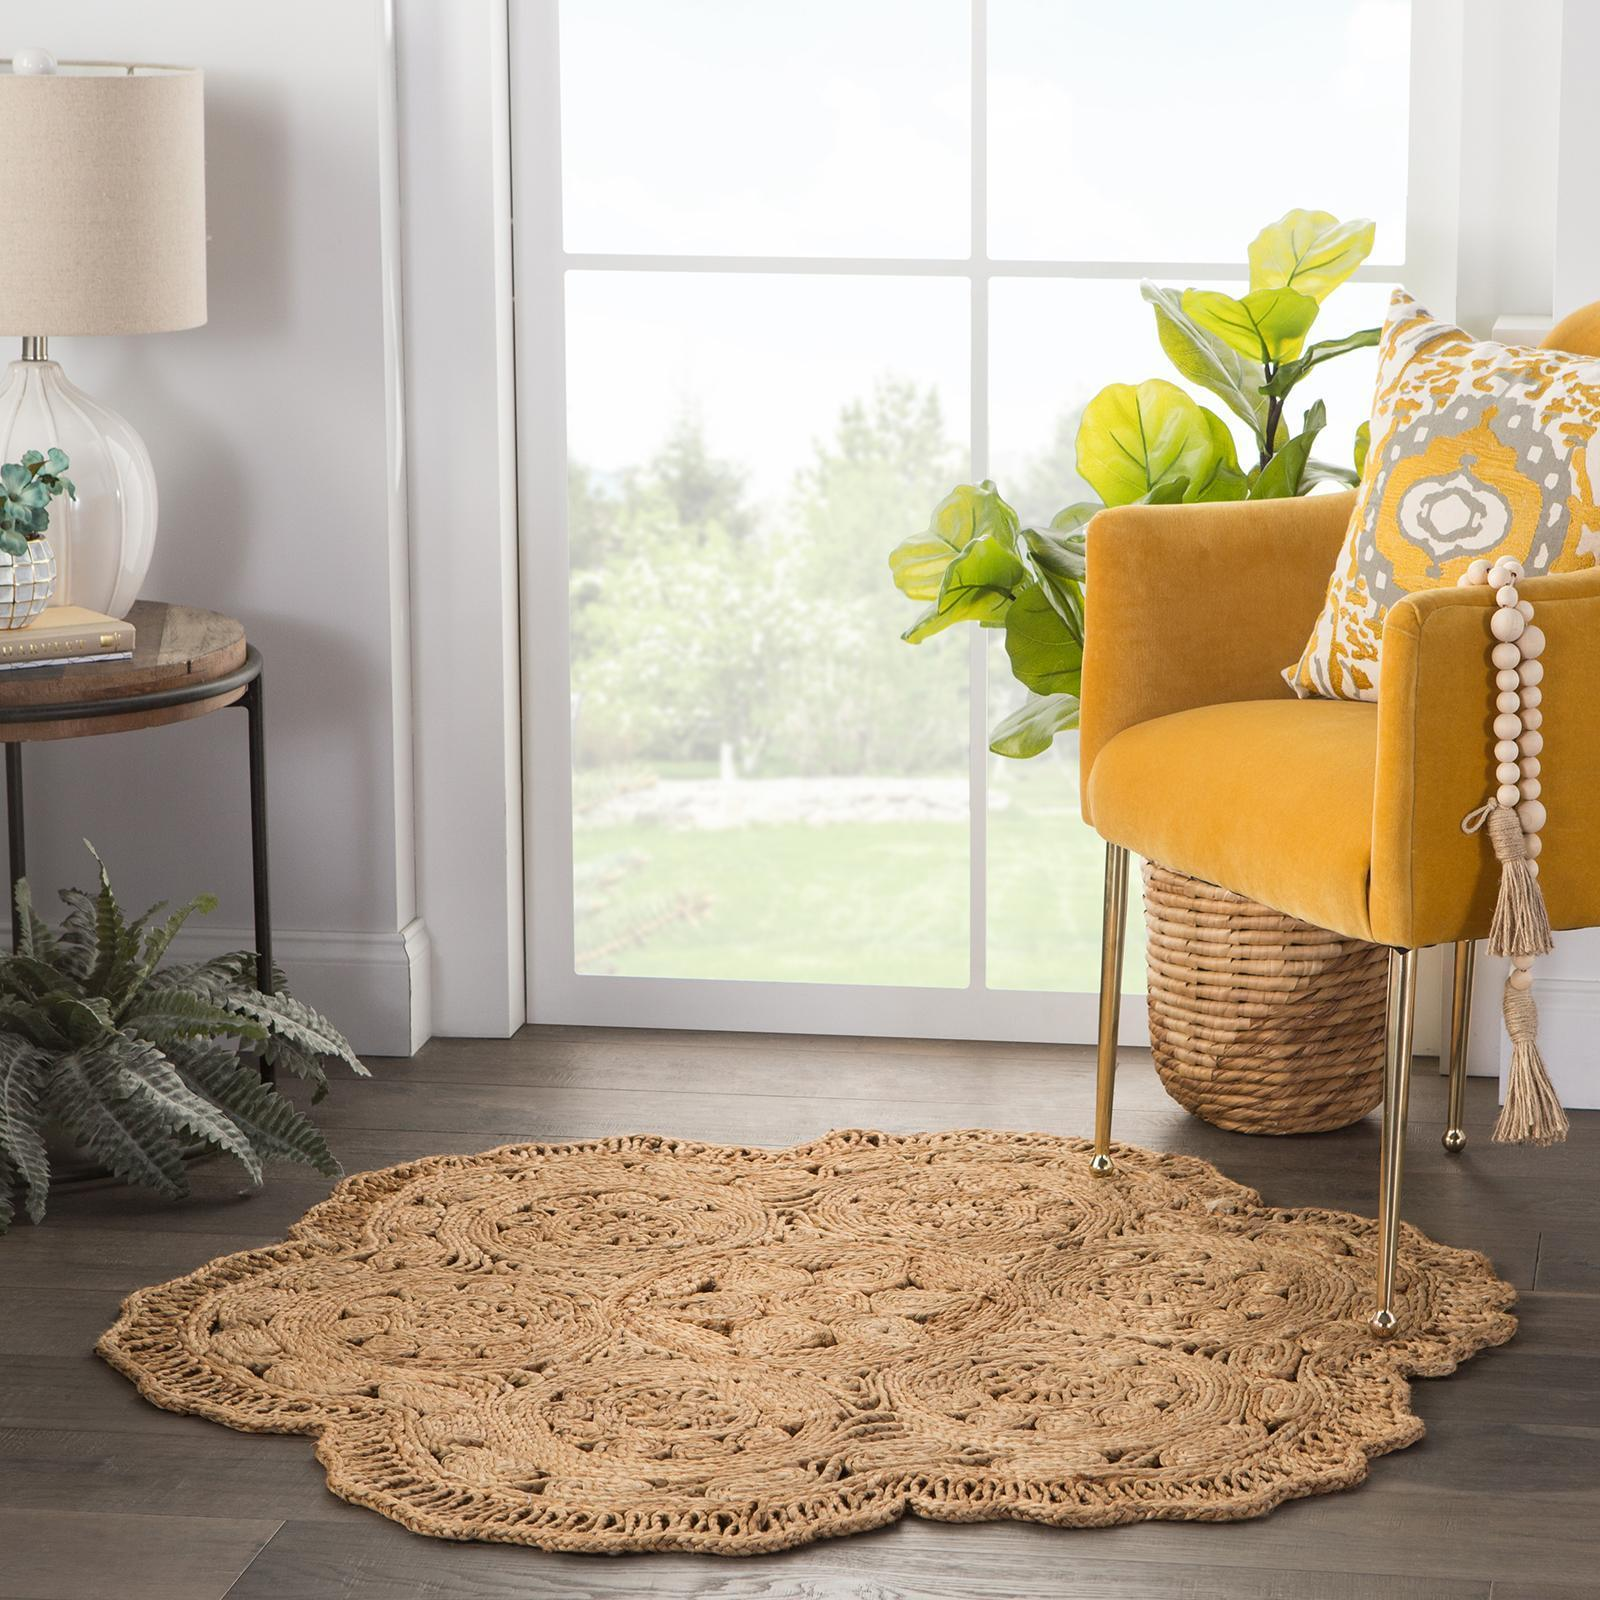 Freesia Natural Floral Round Rug